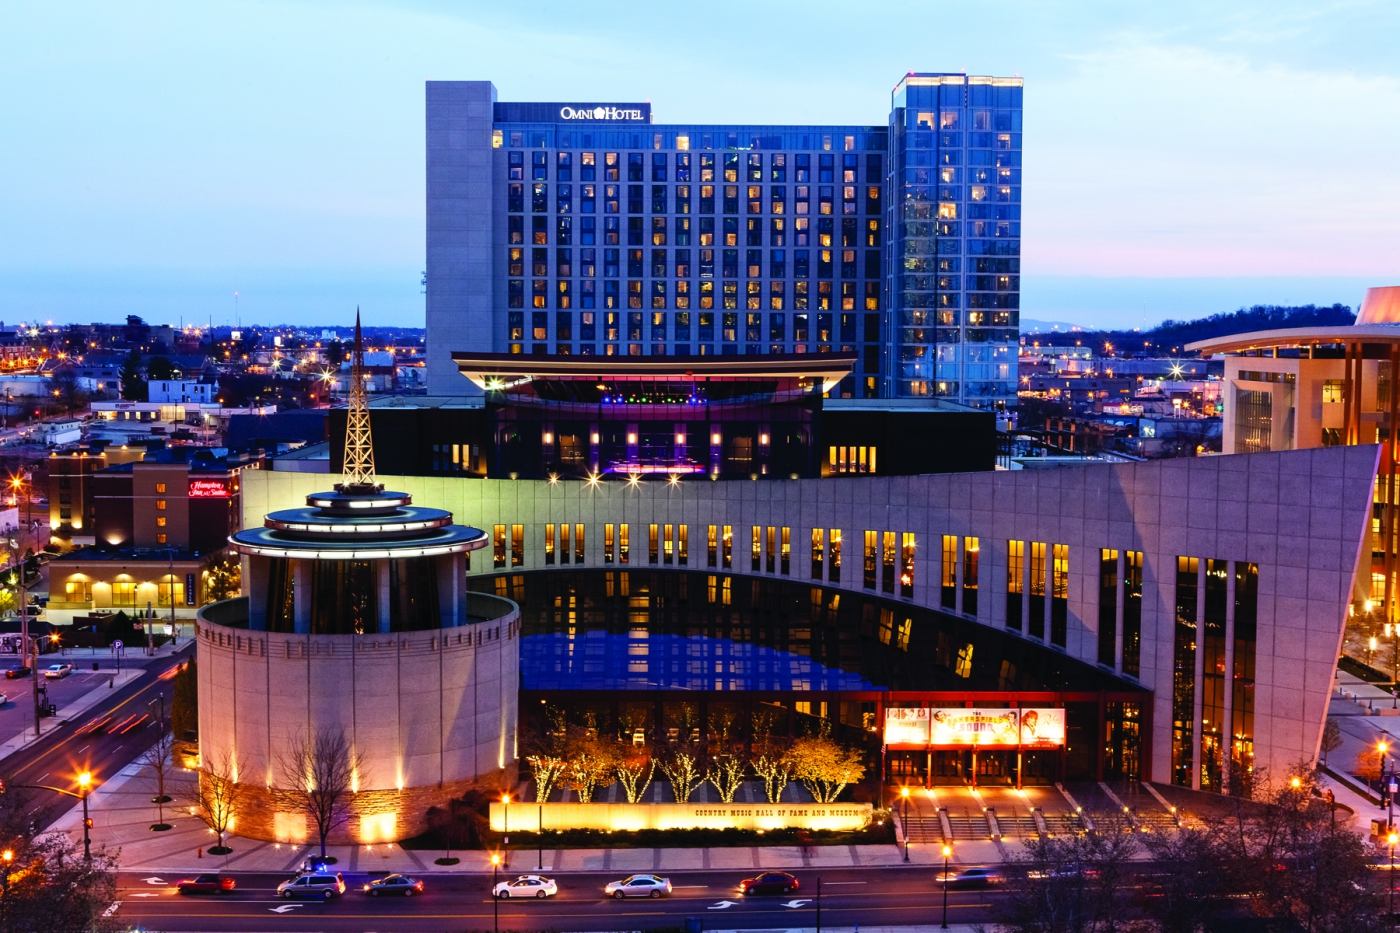 Make a visit to the Country Music Hall of Fame and enjoy the incredible music heritage of Nashville!